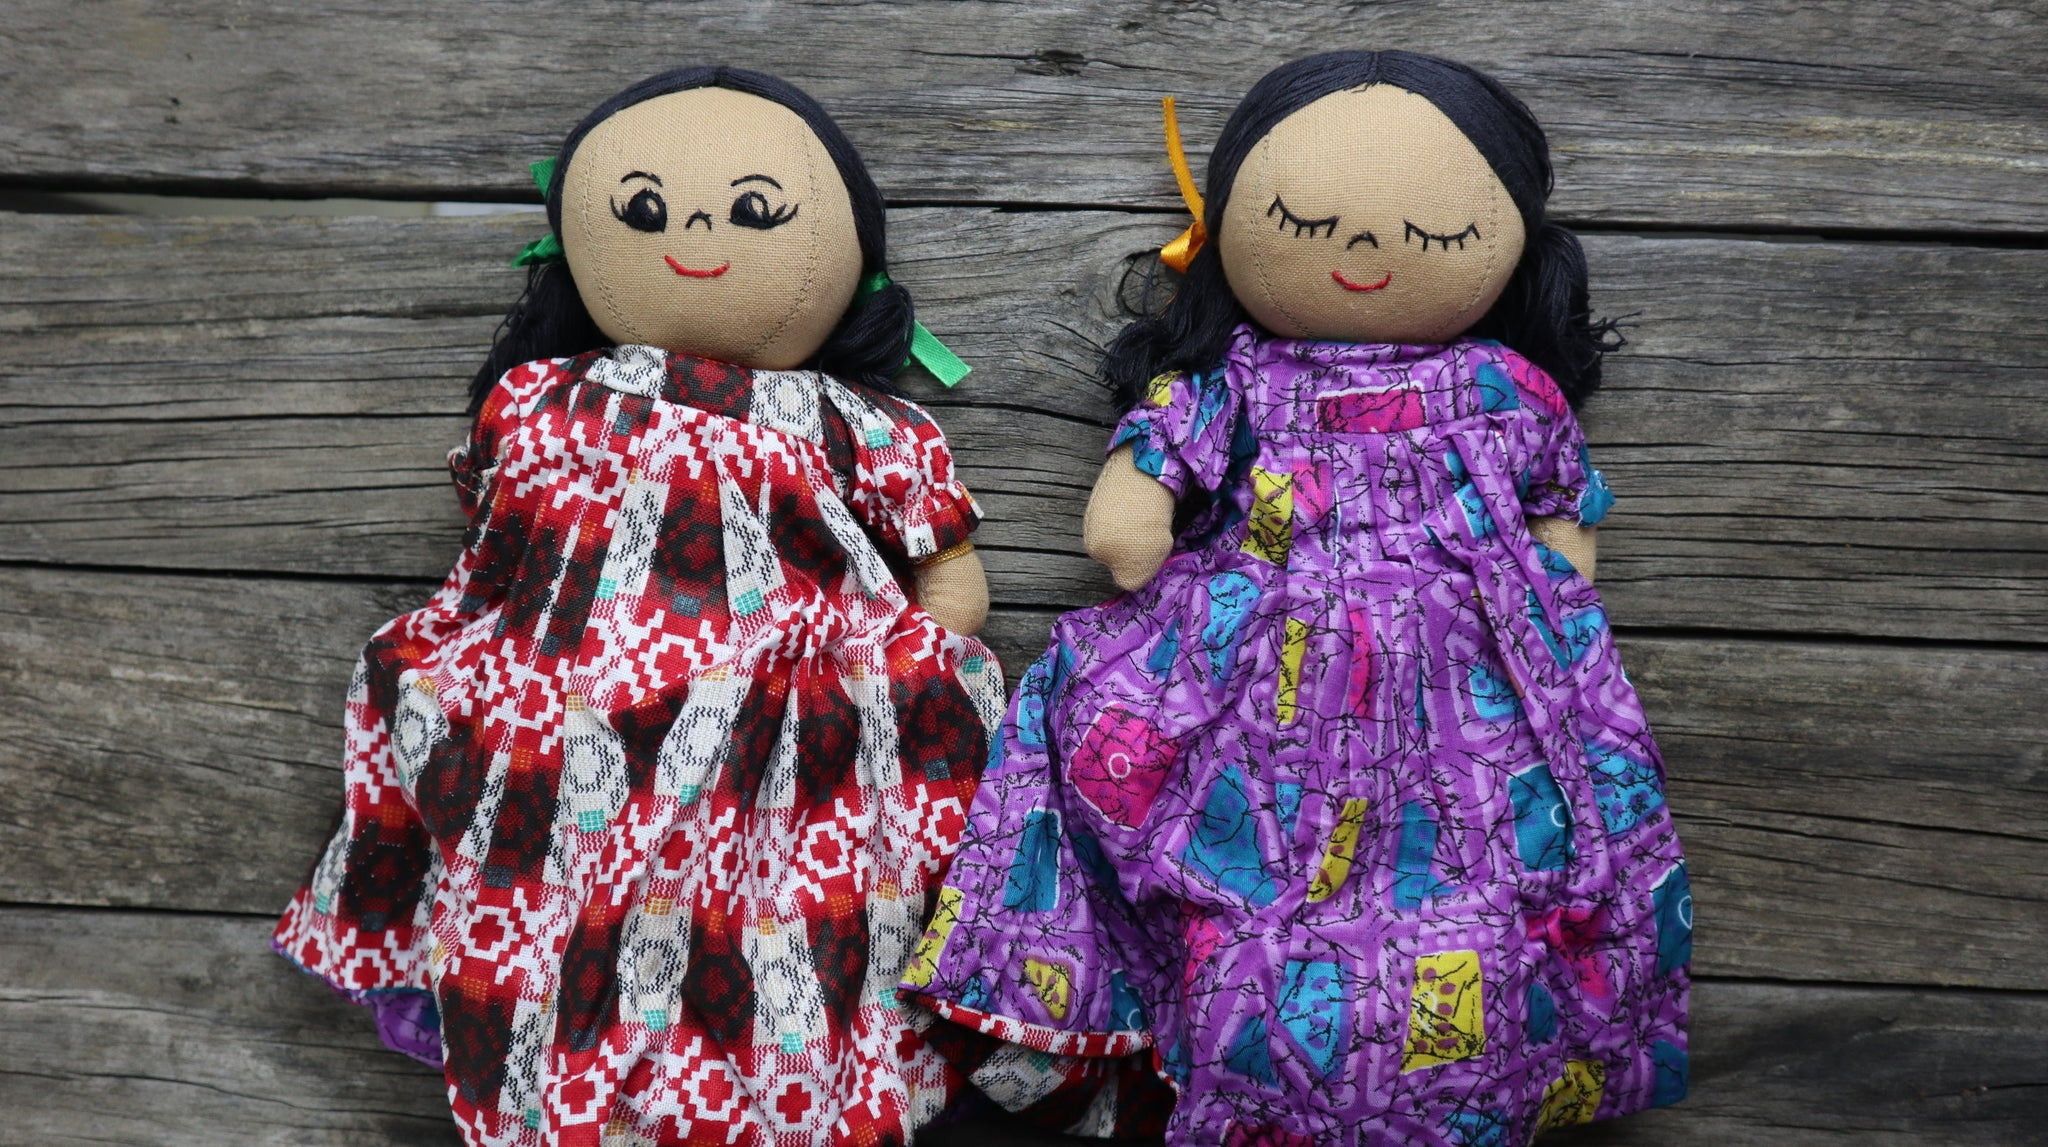 Fair Trade Ethical Cotton Upside Down Doll Purple and Red